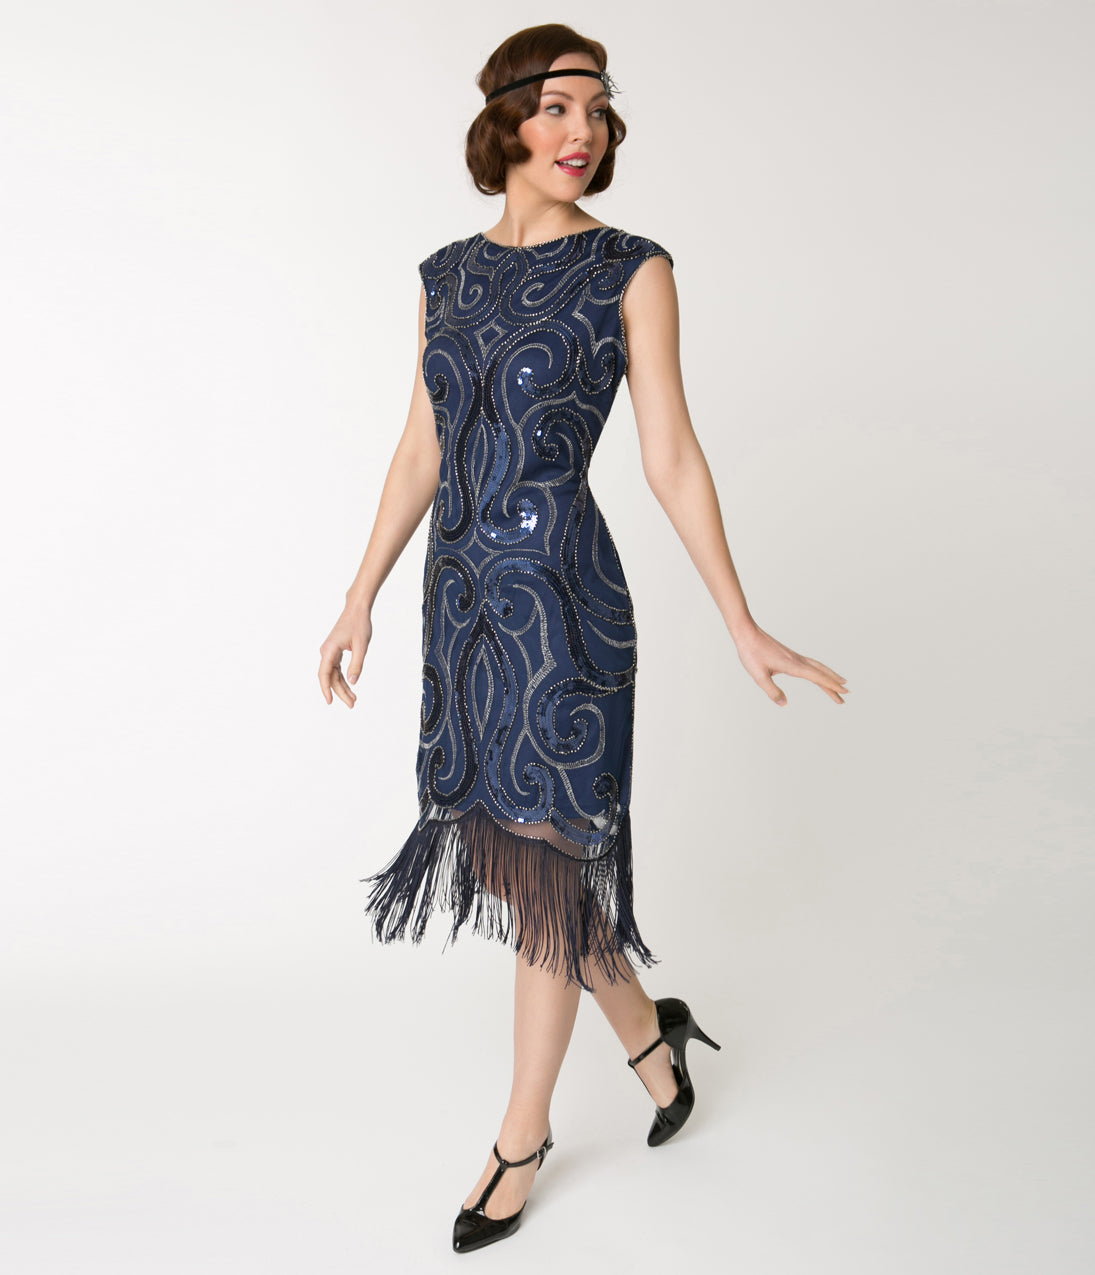 1920s Style Dresses, Flapper Dresses Unique Vintage Navy Blue  Silver Swirl Iris Fringe Flapper Dress $74.00 AT vintagedancer.com